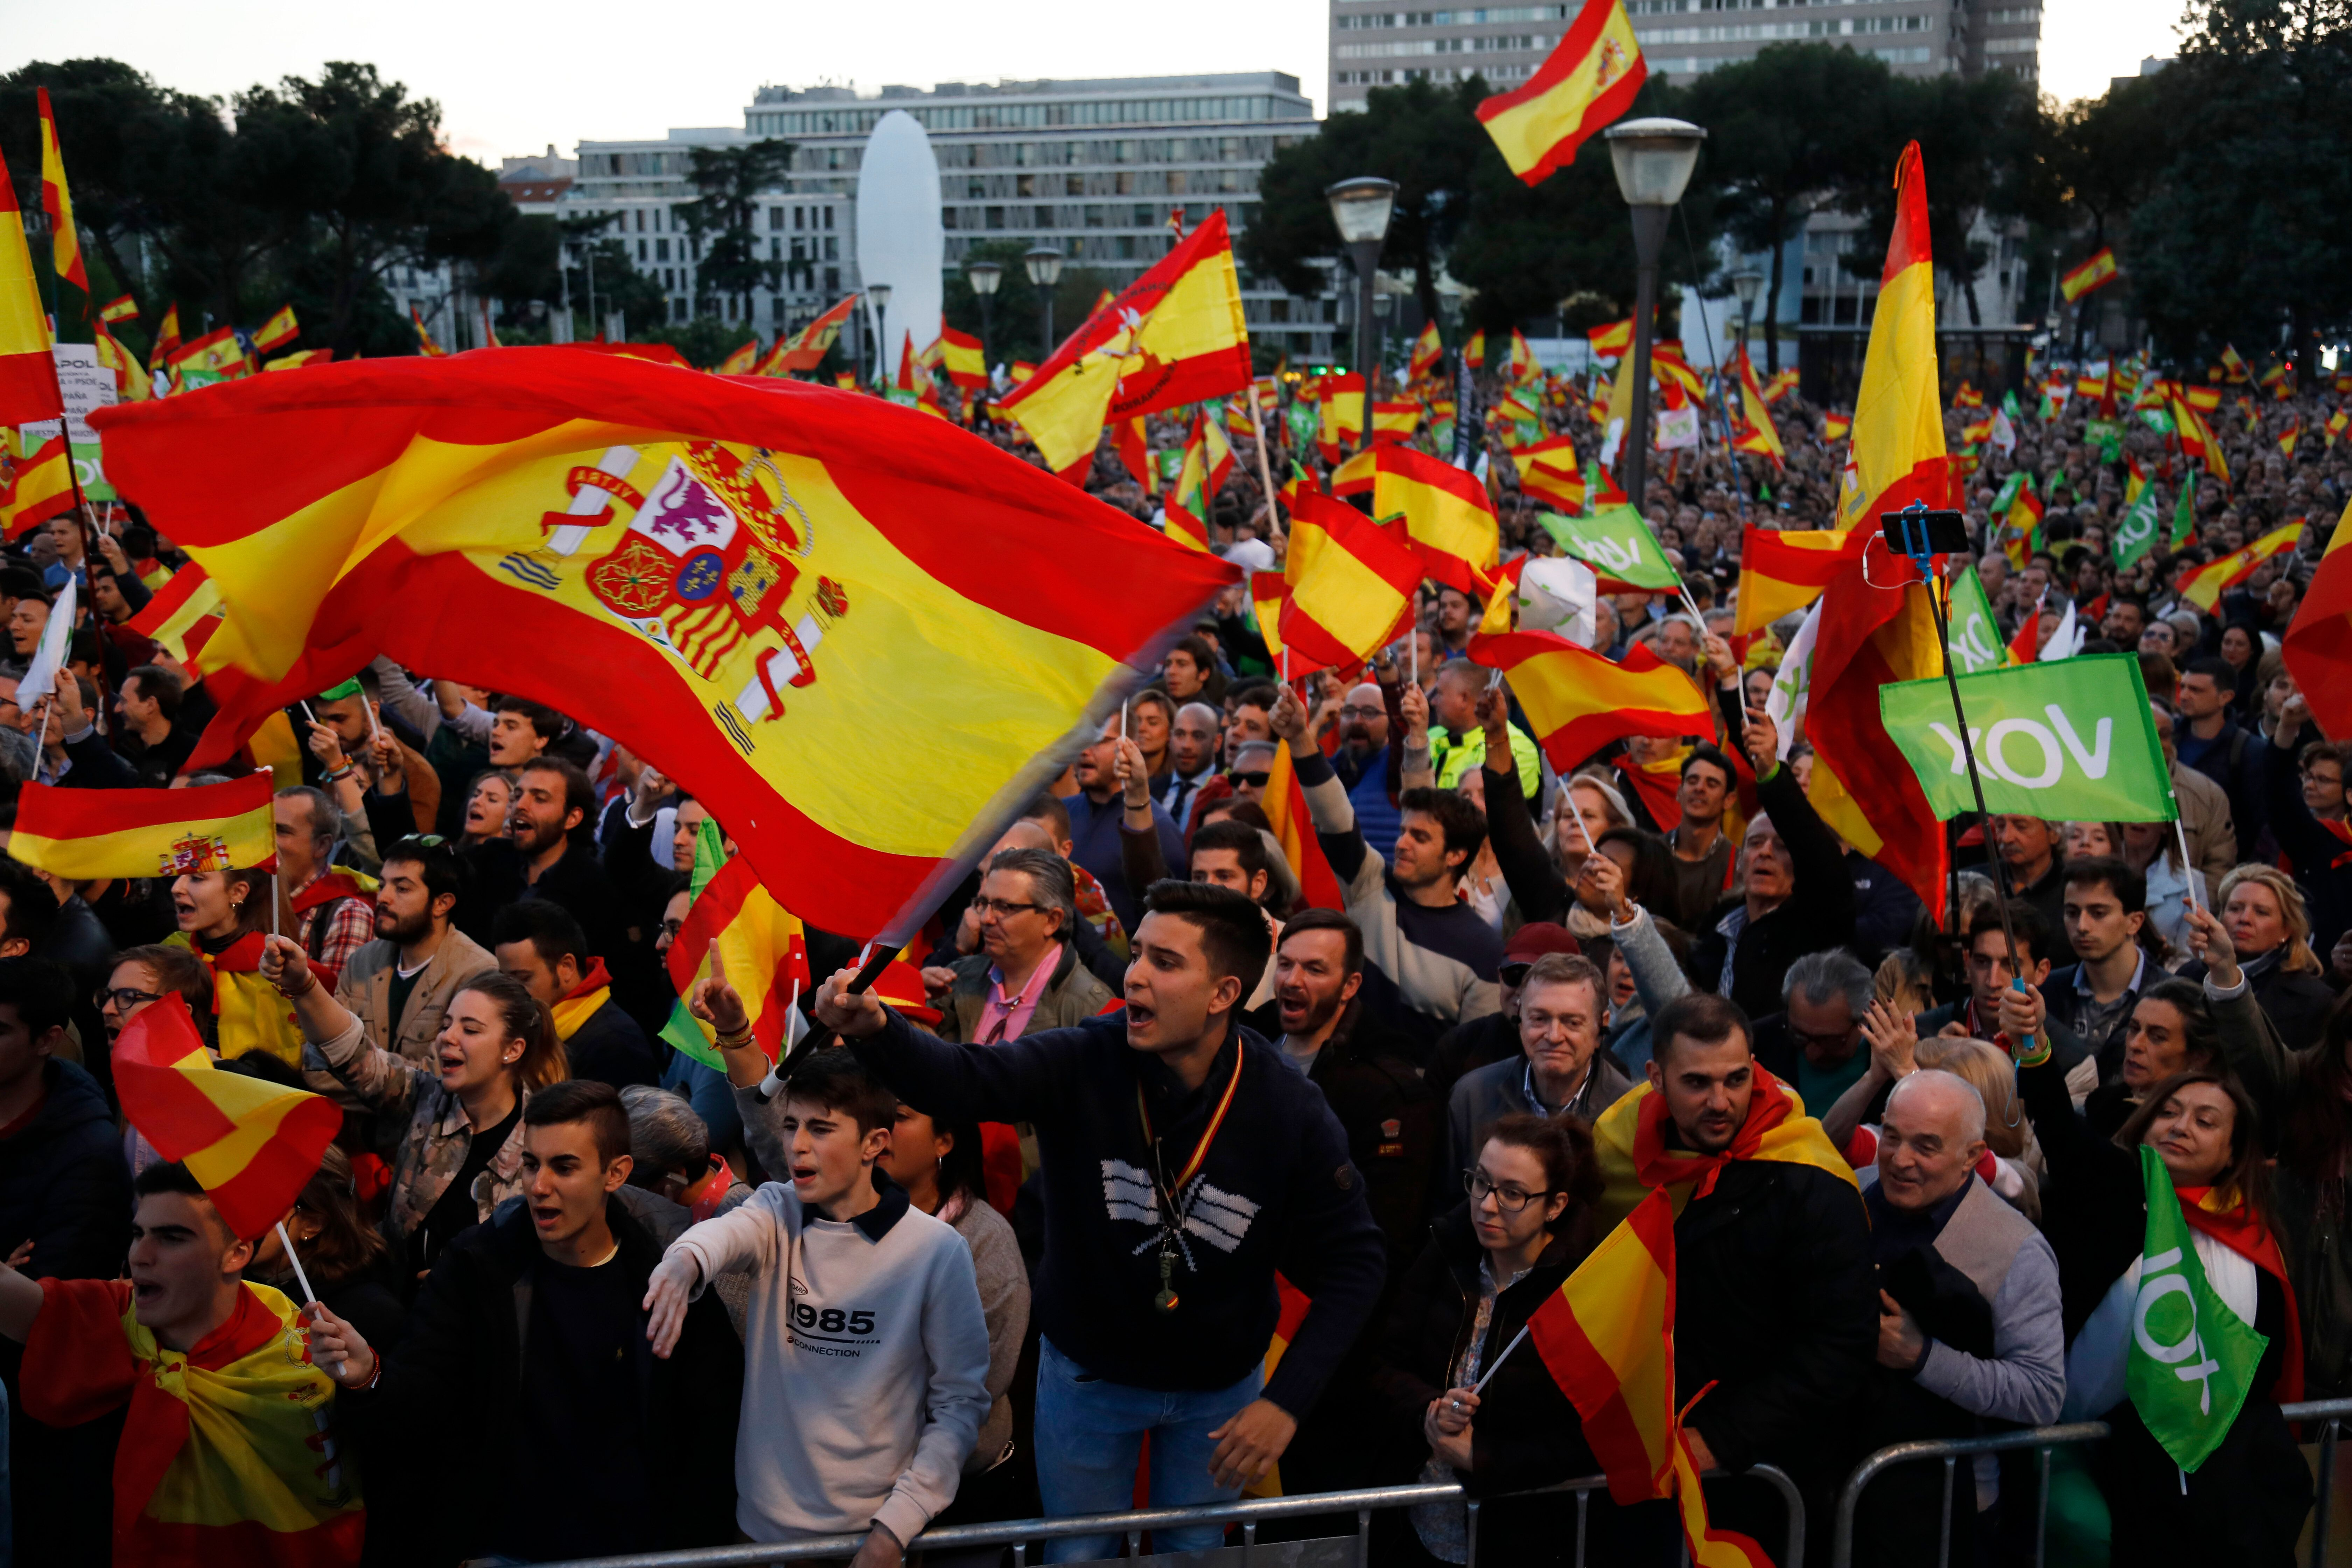 MADRID, SPAIN - APRIL 26: Supporters take part in the VOX closing rally on April 26, 2019 in Madrid, Spain. Spaniards go to the polls to elect 350 members of the parliament and 208 senators this Sunday. This will be the 13th General Election since the transition to democracy resulting in the Constitution of 1978. There are five main parties: the two traditional parties are the right-wing Partido Popular (People's Party) and the centre-left Partido Socialista Obrero Espanol or PSOE (Spanish Socialist Workers's Party), along with right-wing parties Ciudadanos (Citizens) and VOX and the left wing party, Unidas Podemos (United We Can). (Photo by Pablo Blazquez Dominguez/Getty Images)